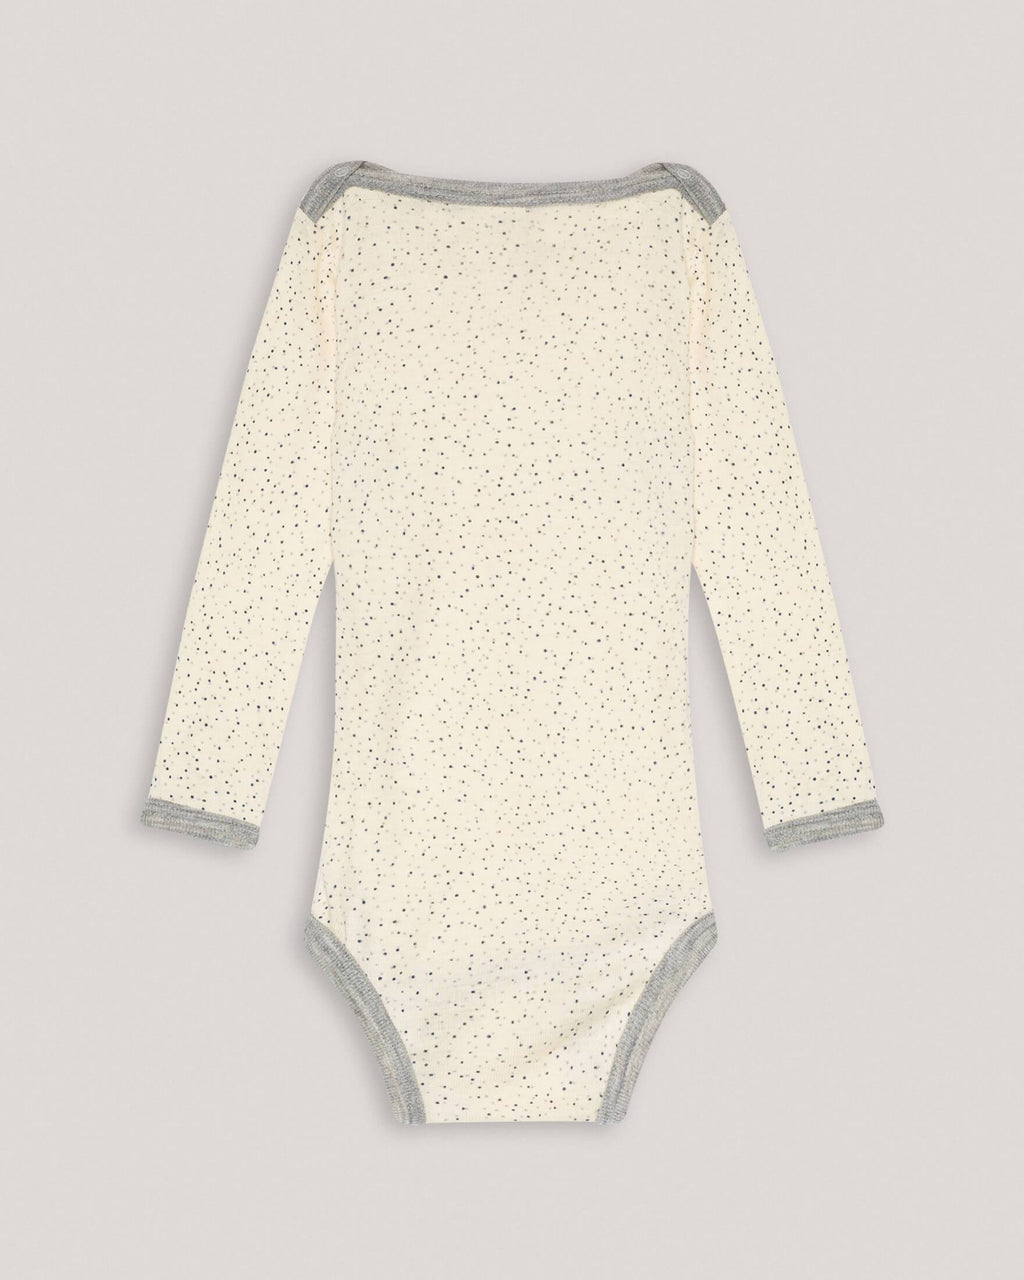 variant_2 | EN Nature White Baby Longsleeve Body with Dots ENGEL | DE Naturweißer Baby Langarmbody Body mit Punkten ENGEL